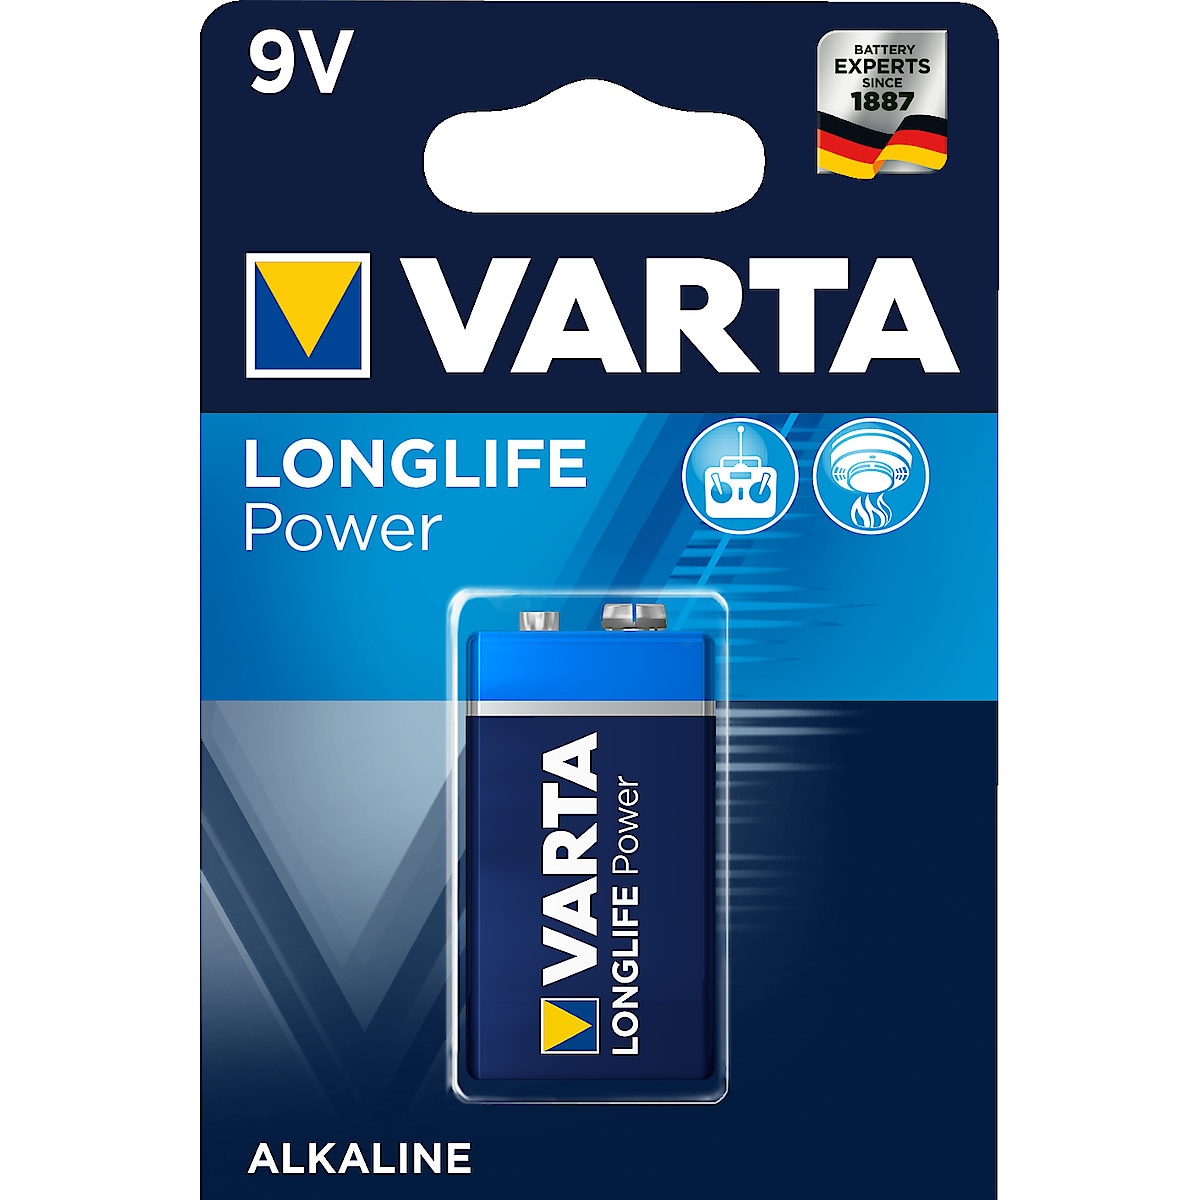 Alkaliparisto 9 V VARTA Longlife Power